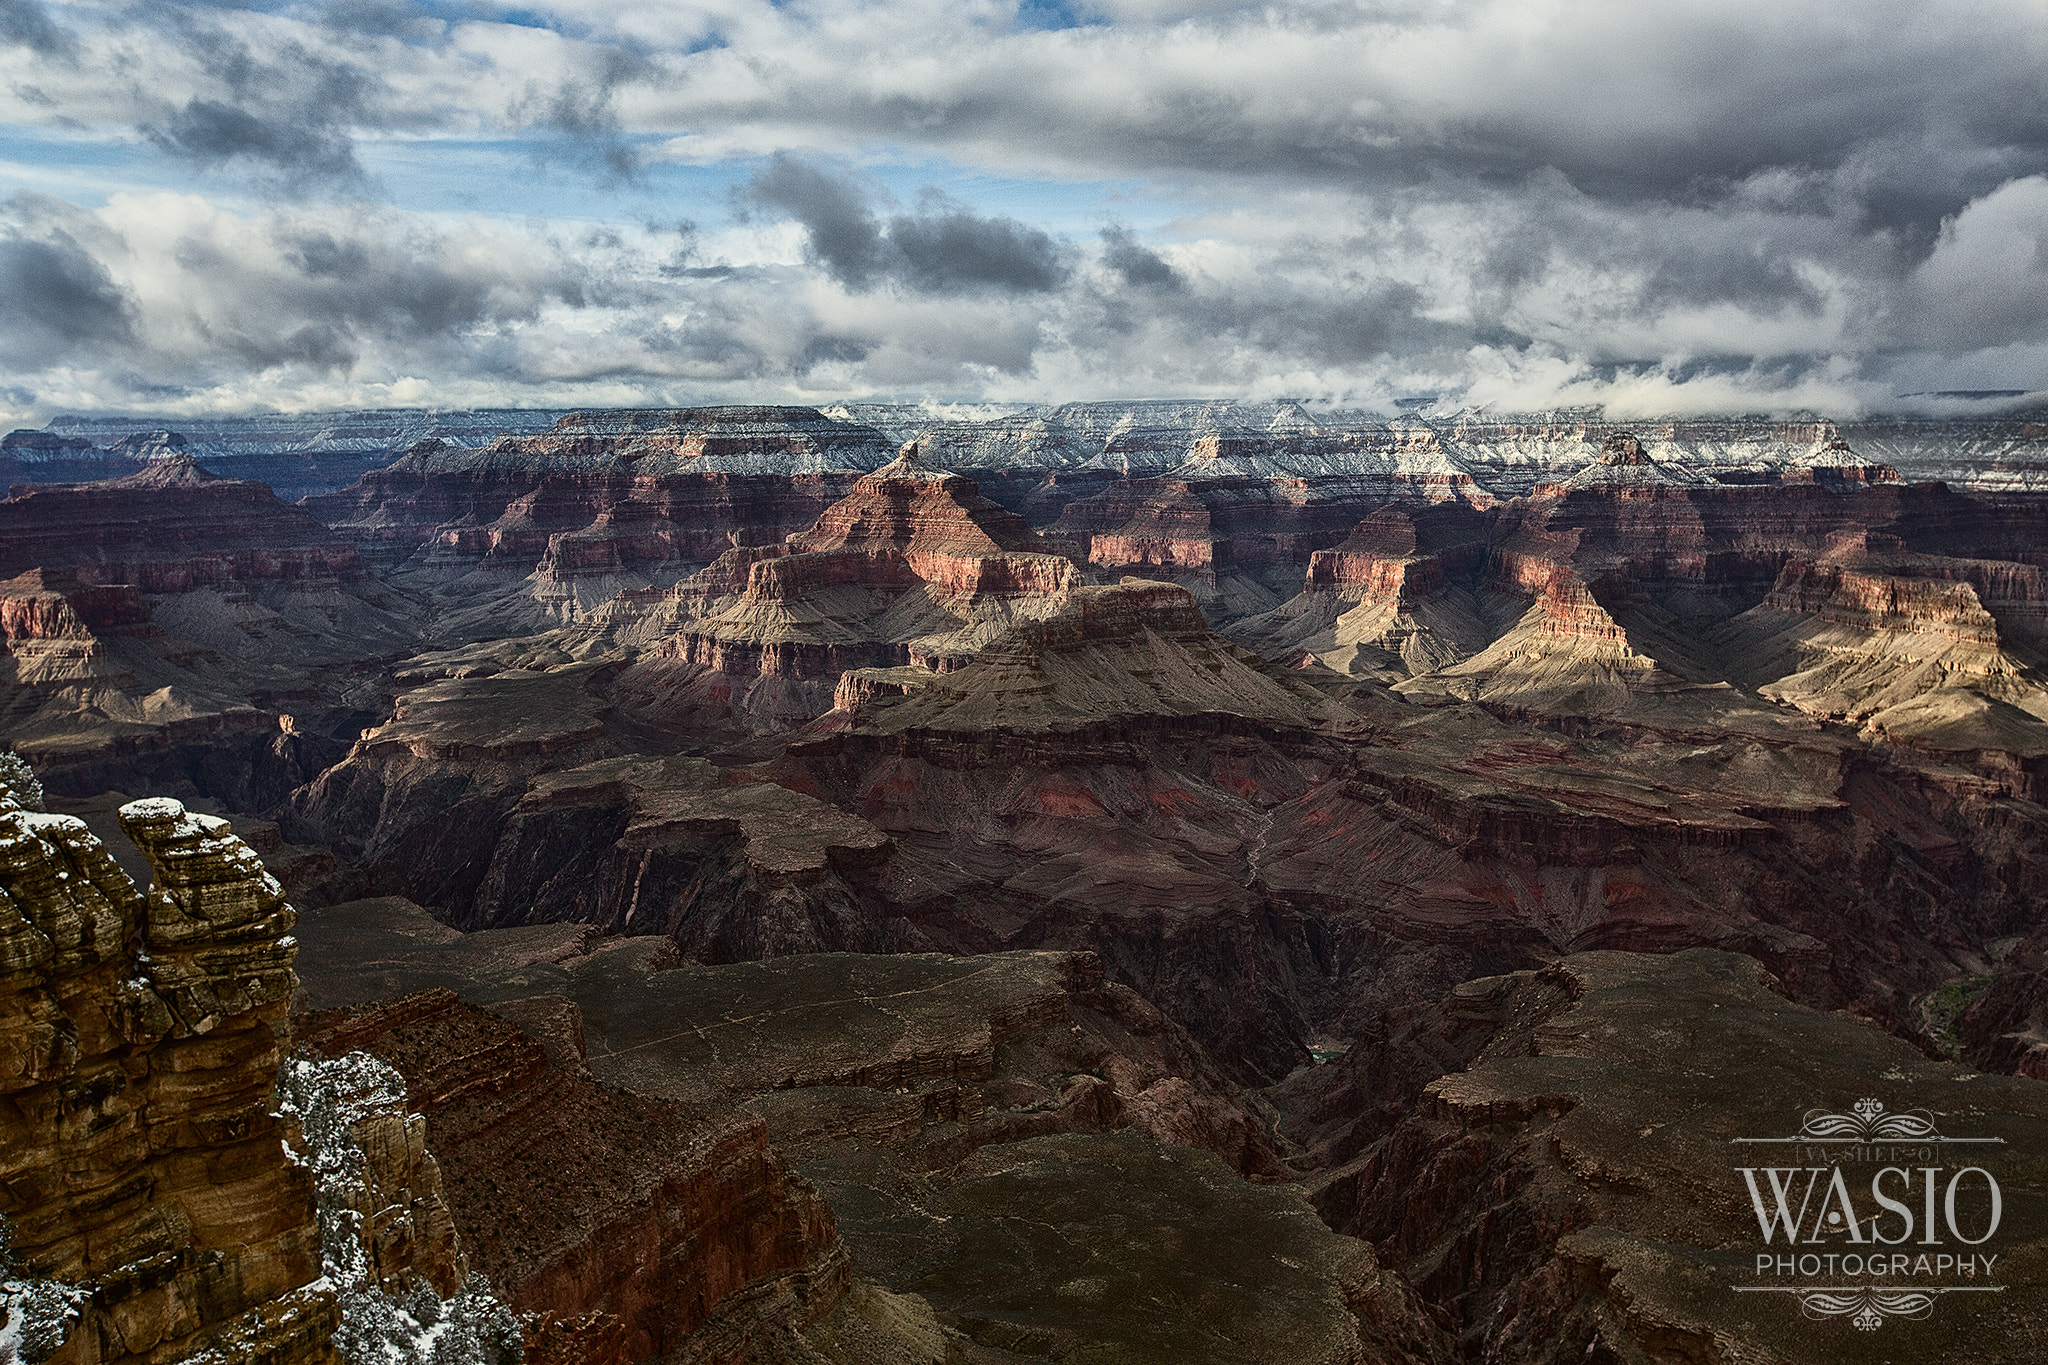 Photograph Grand Canyon by Yaneck Wasiek on 500px